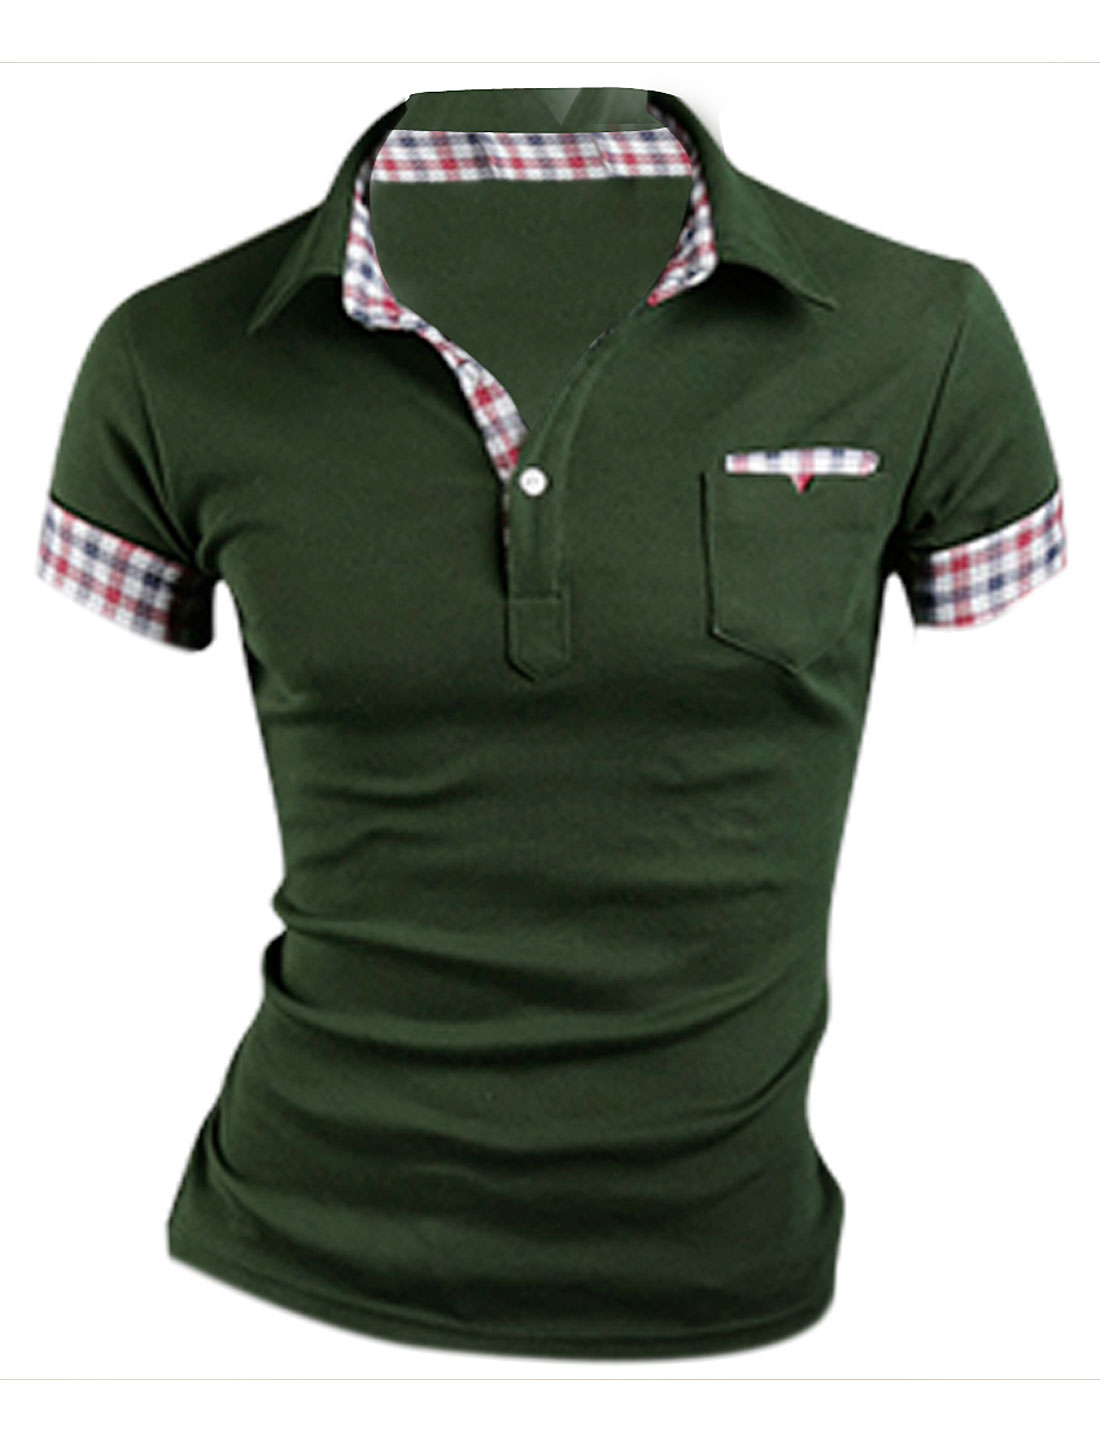 Mens Chic Point Collar Short Sleeve Button Front Army green Polo Shirt M